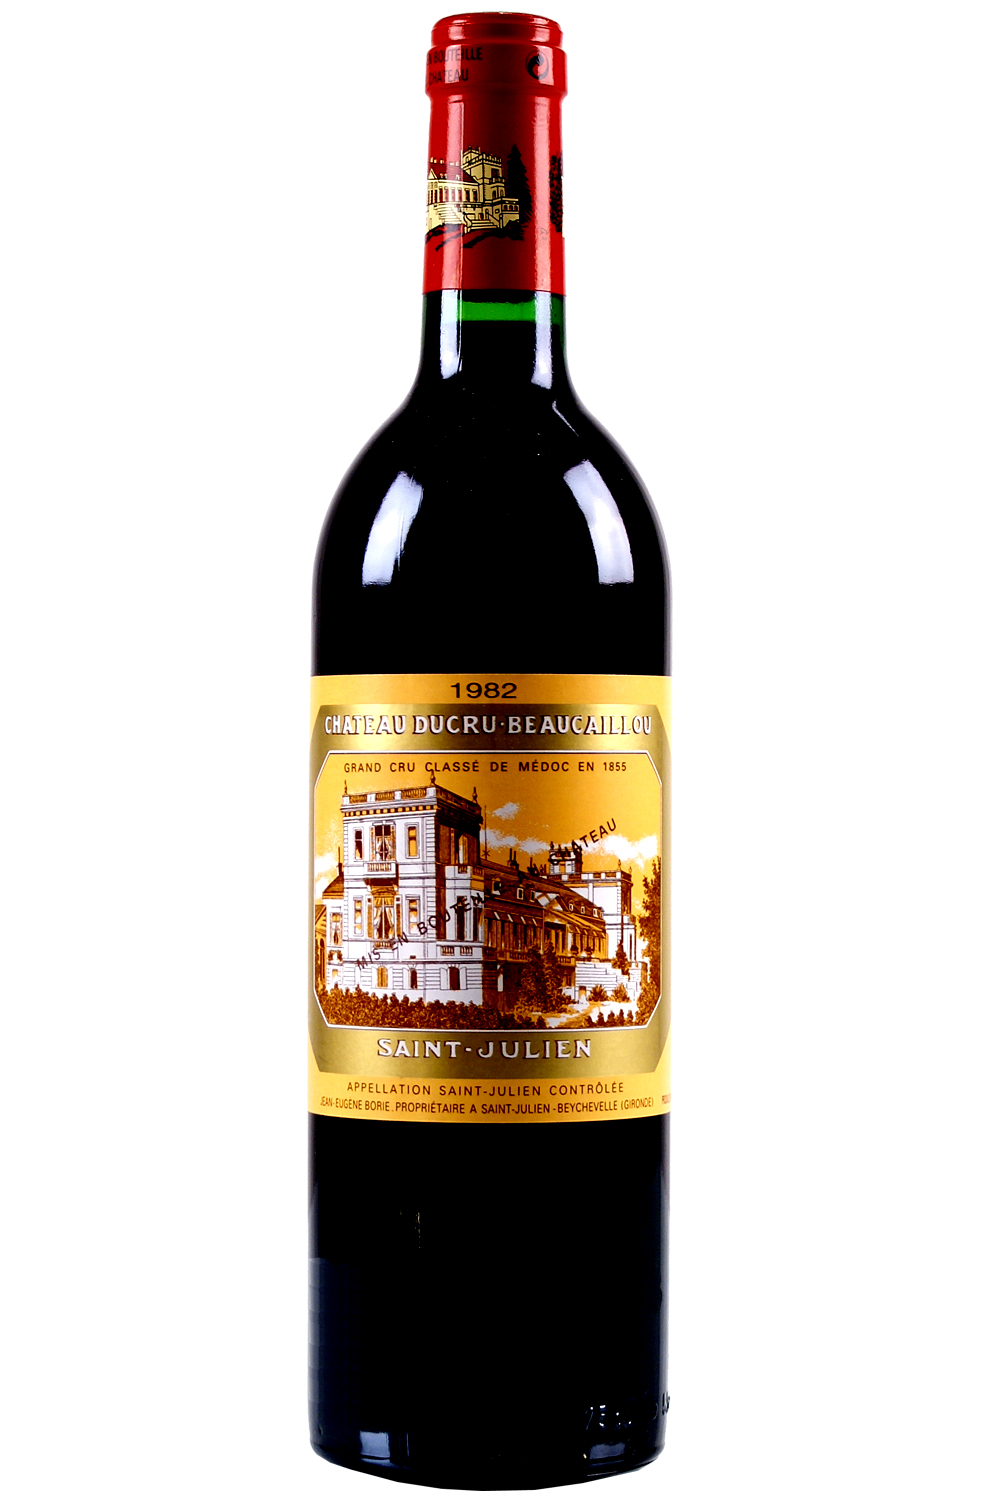 1982 Ducru Beaucaillou Bordeaux Red 750 ml